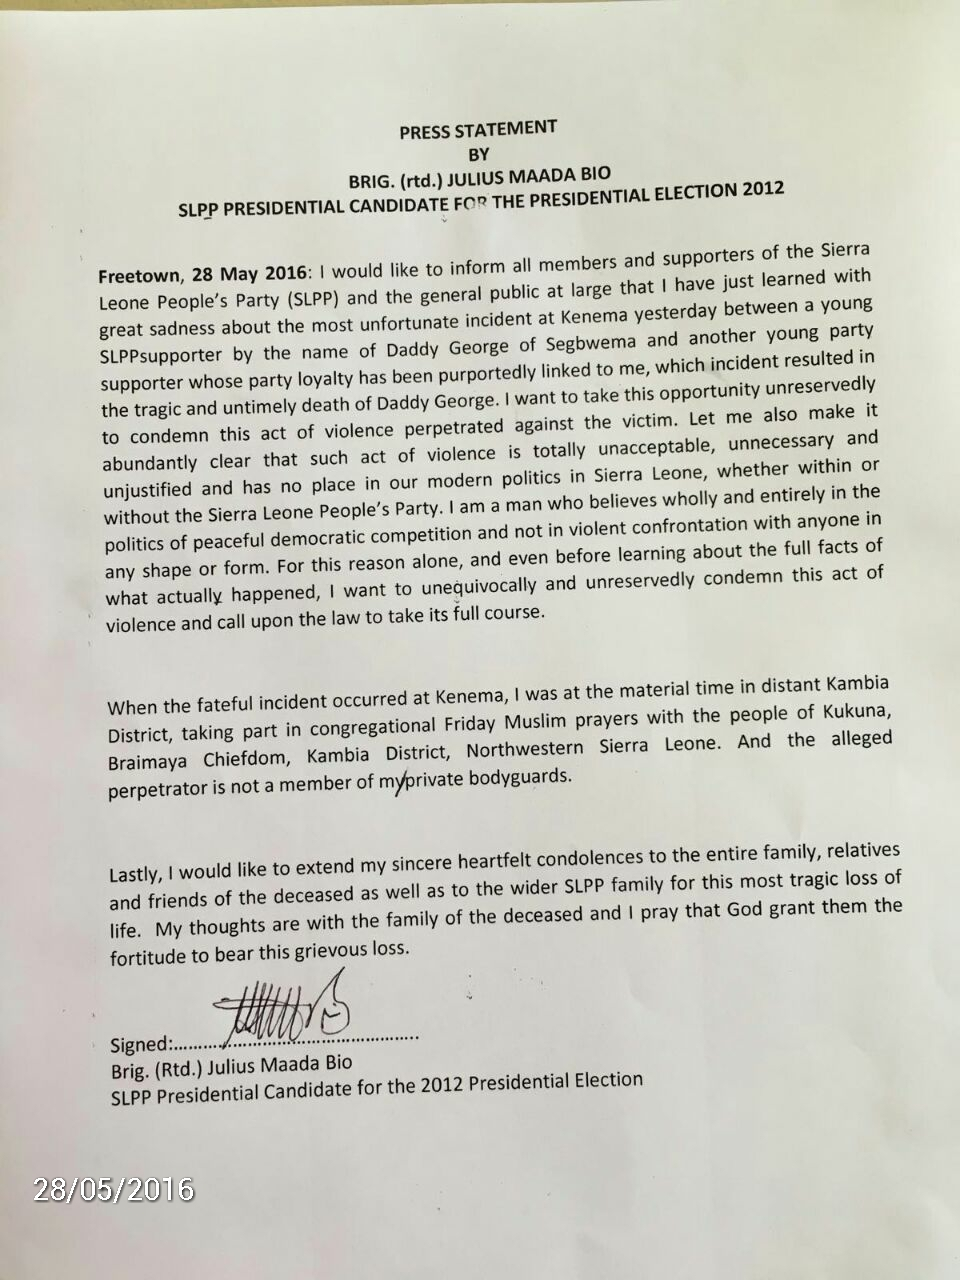 Bio's statement after killing of SLPP supporter – May 2015